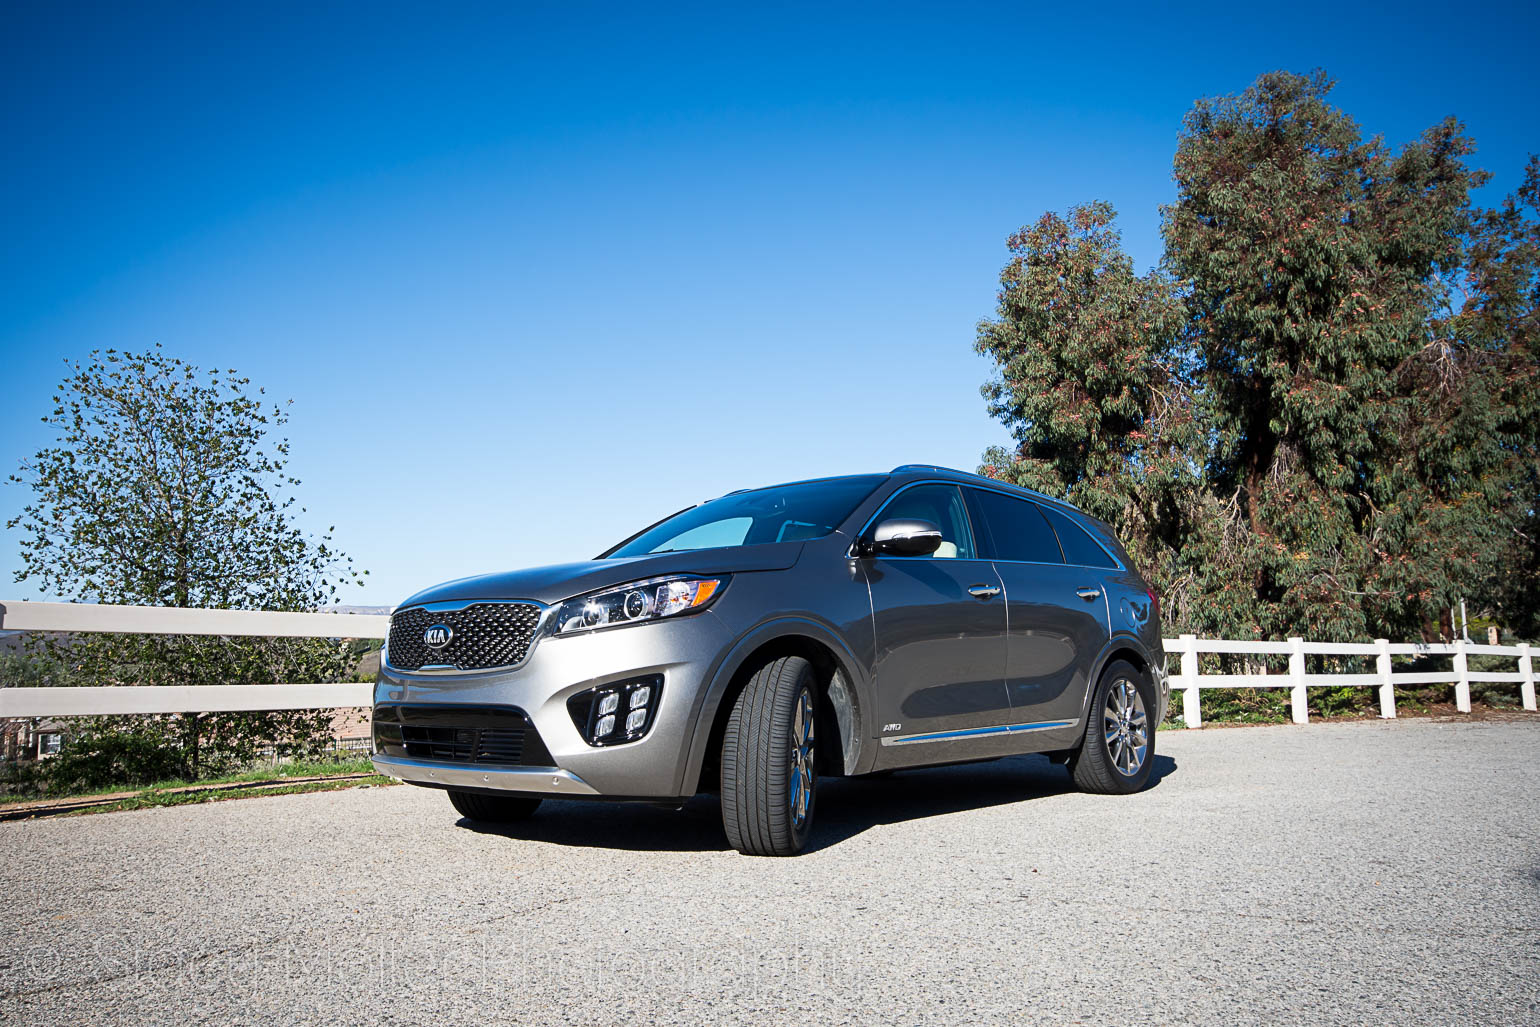 2016 Kia Sorento AWD Review